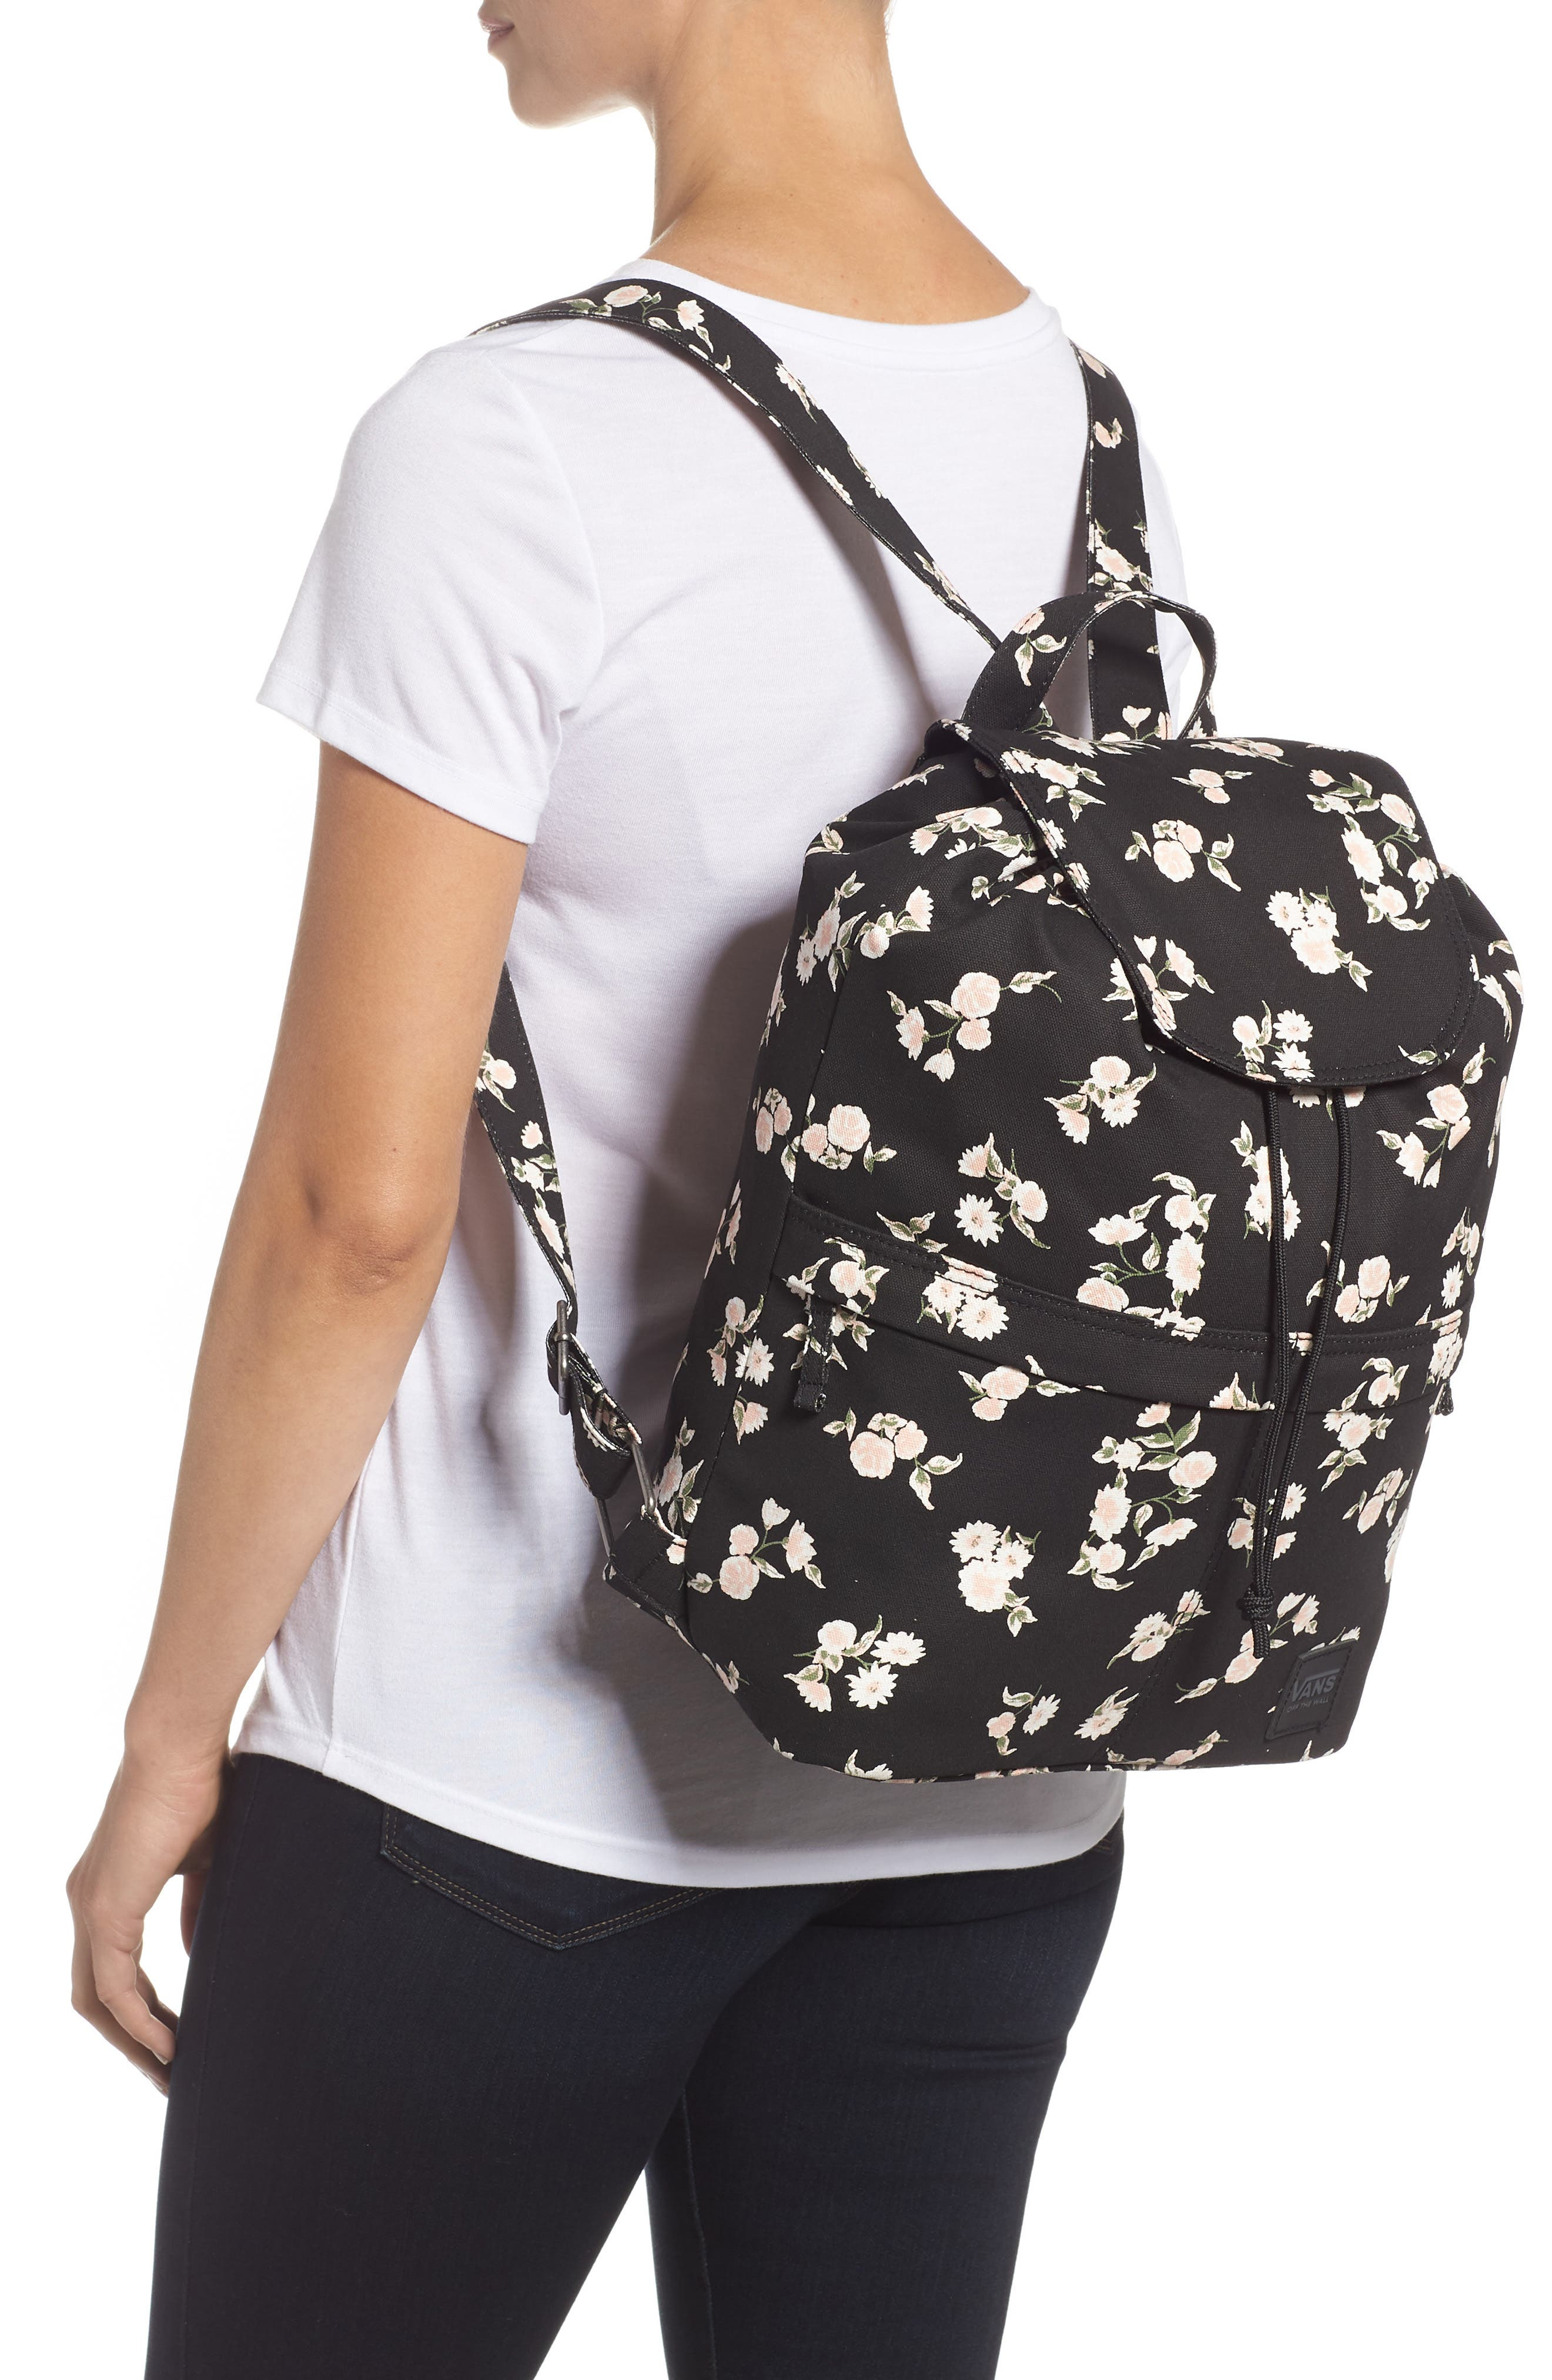 Lakeside Floral Print Backpack,                             Alternate thumbnail 2, color,                             001